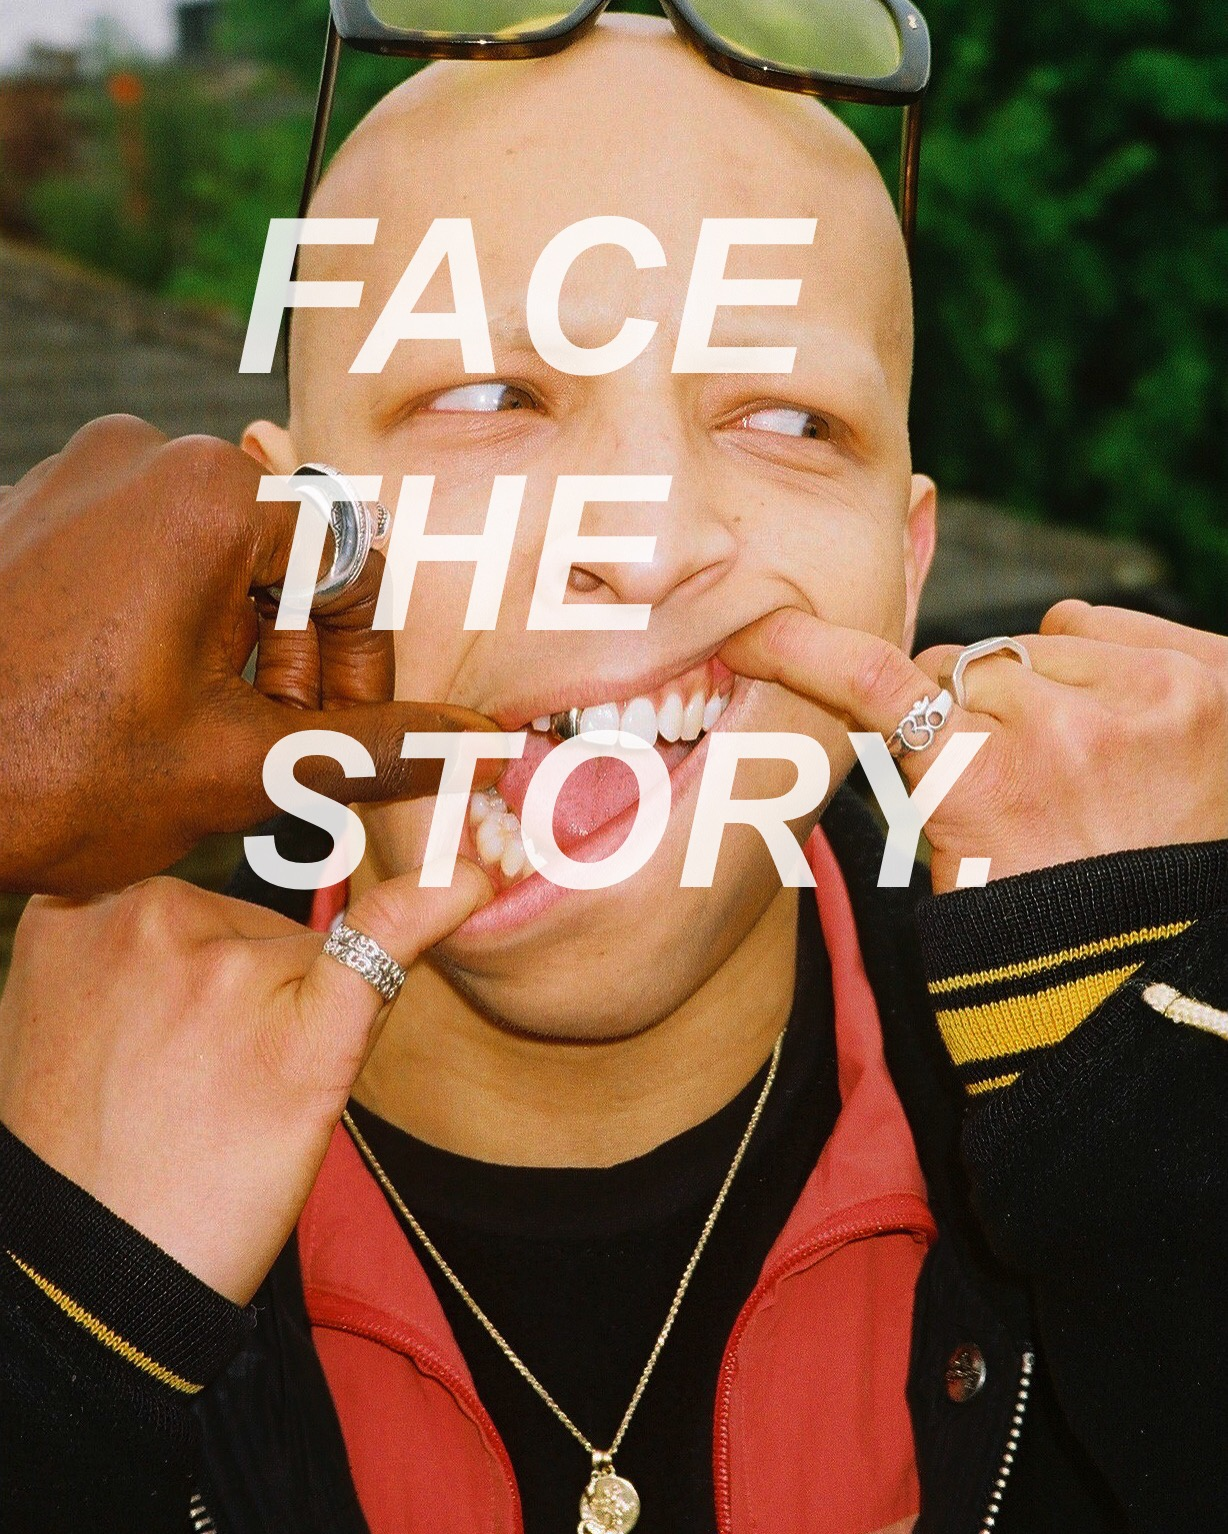 Face The Story by Benji Colson